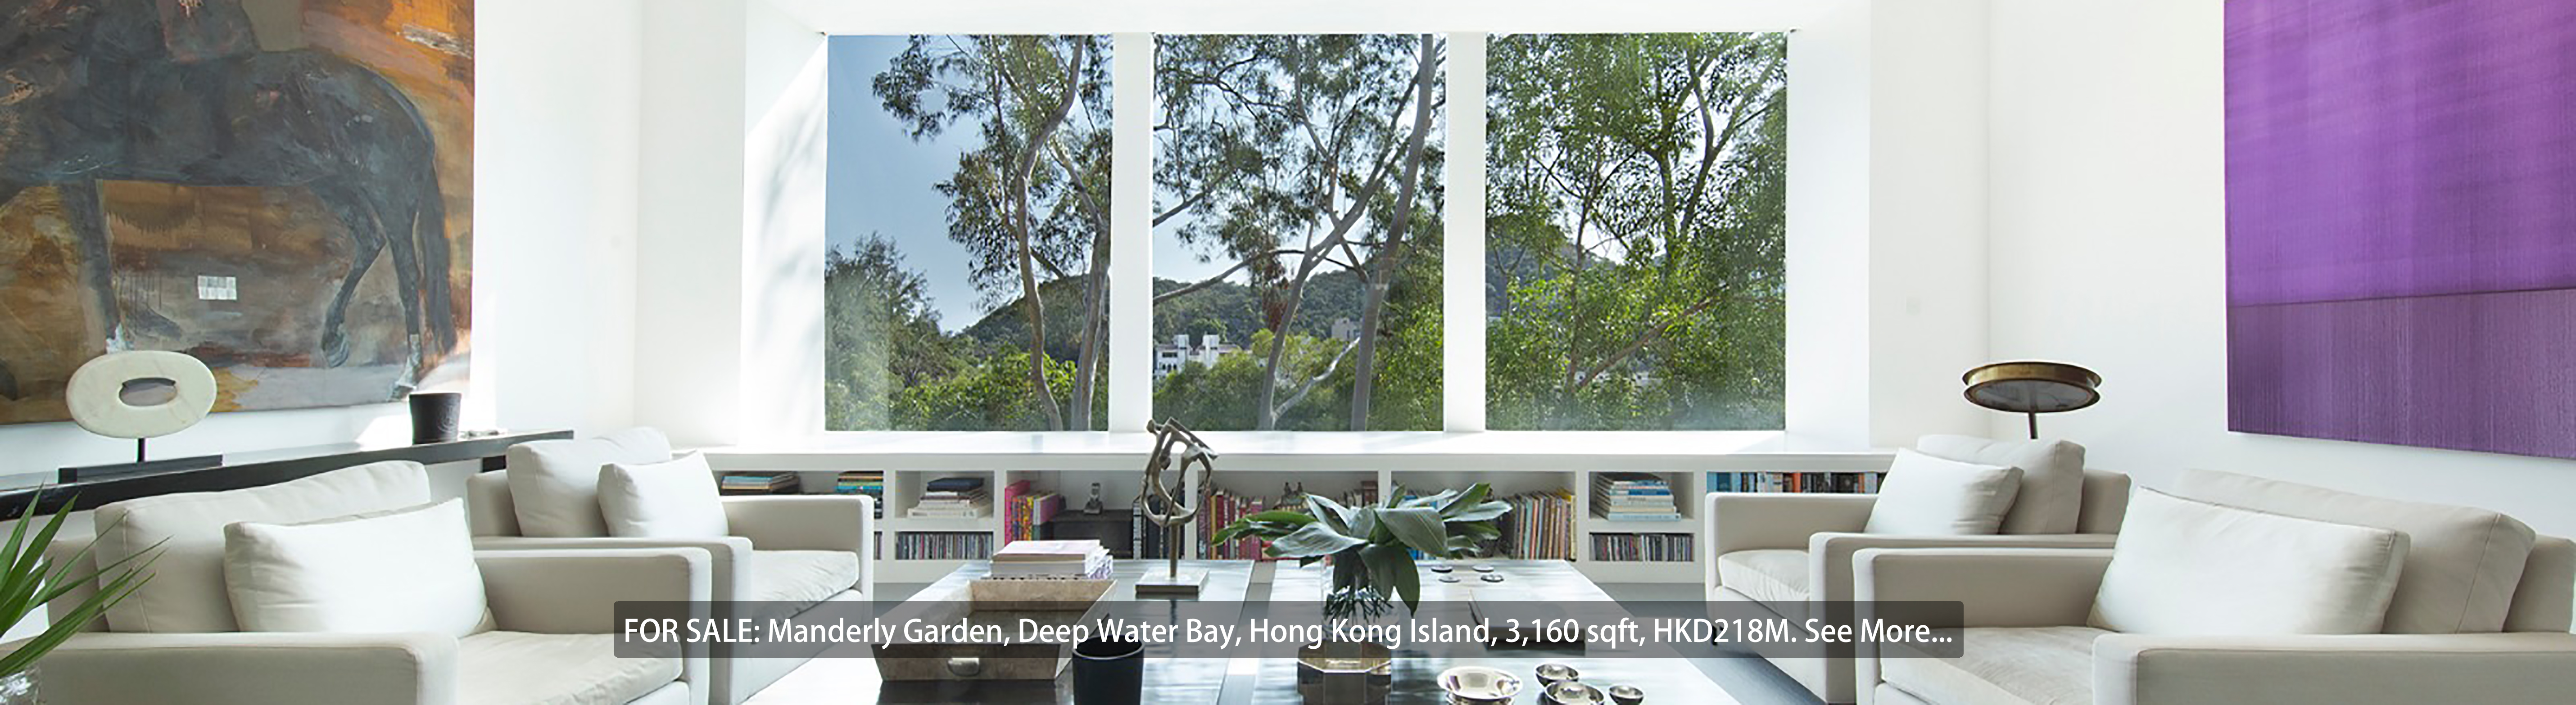 Hong Kong - Manderly Garden